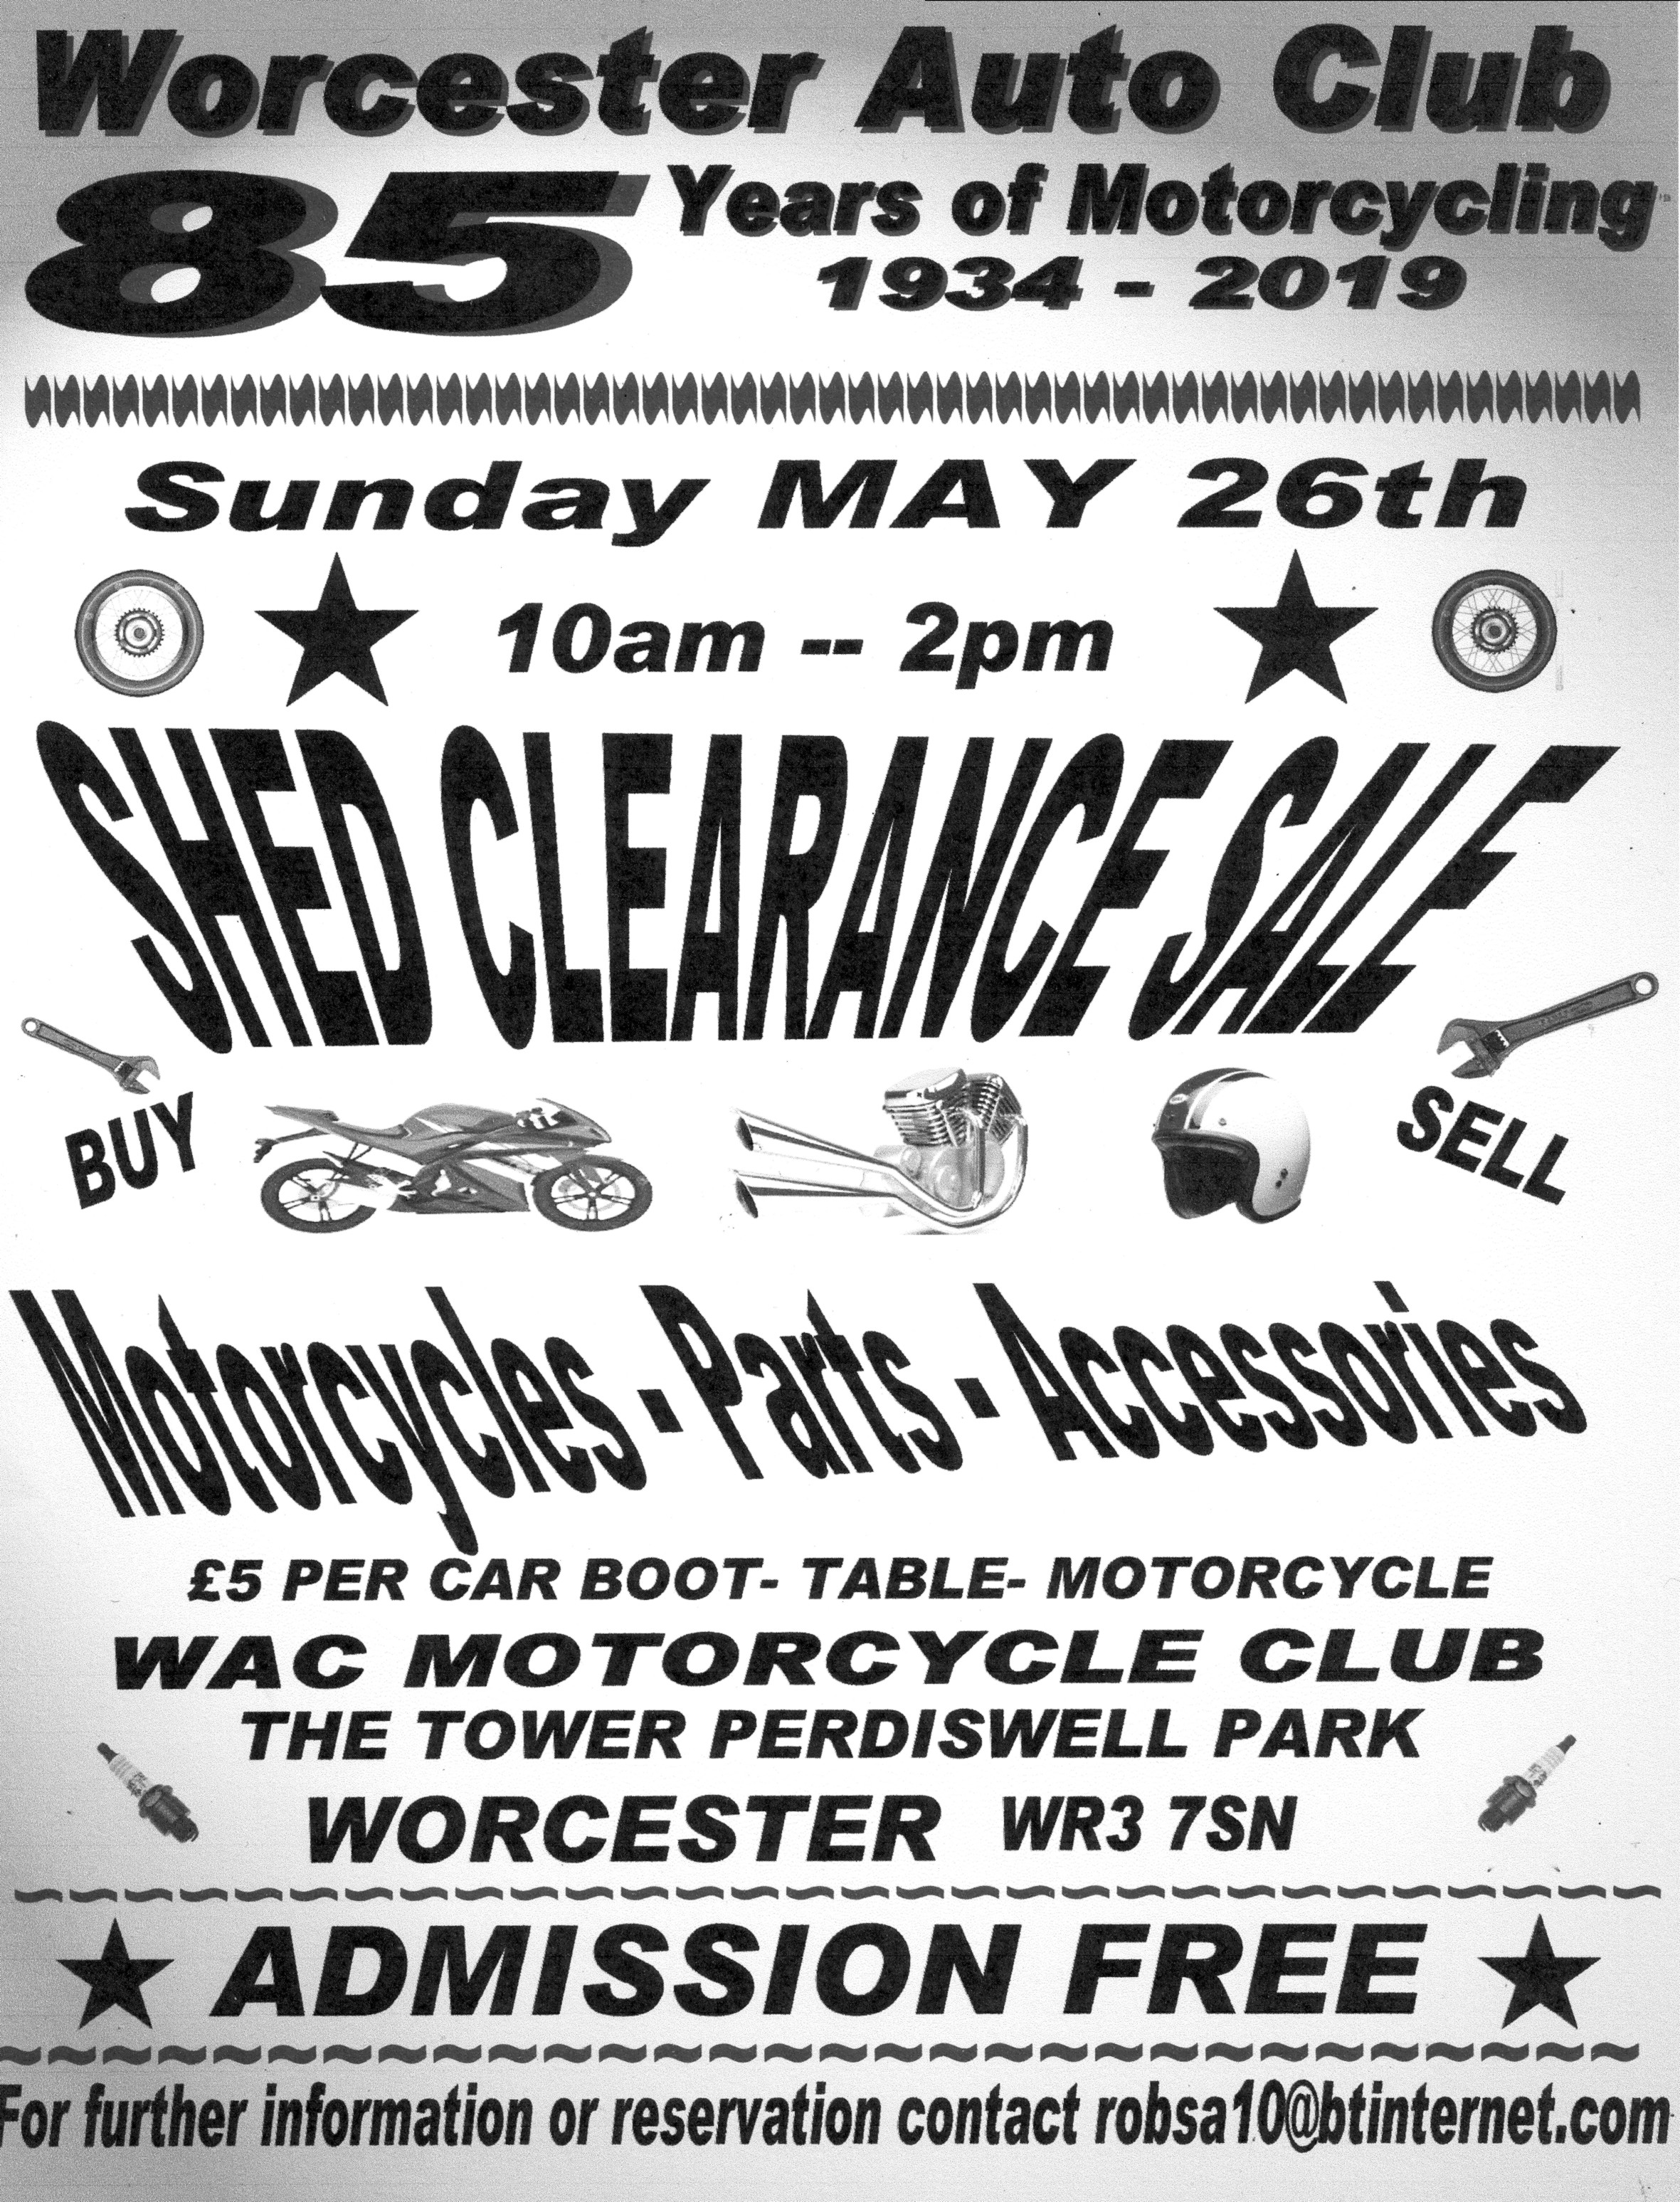 Shed Clearance Sale of Motorcycles, Parts and Accessories